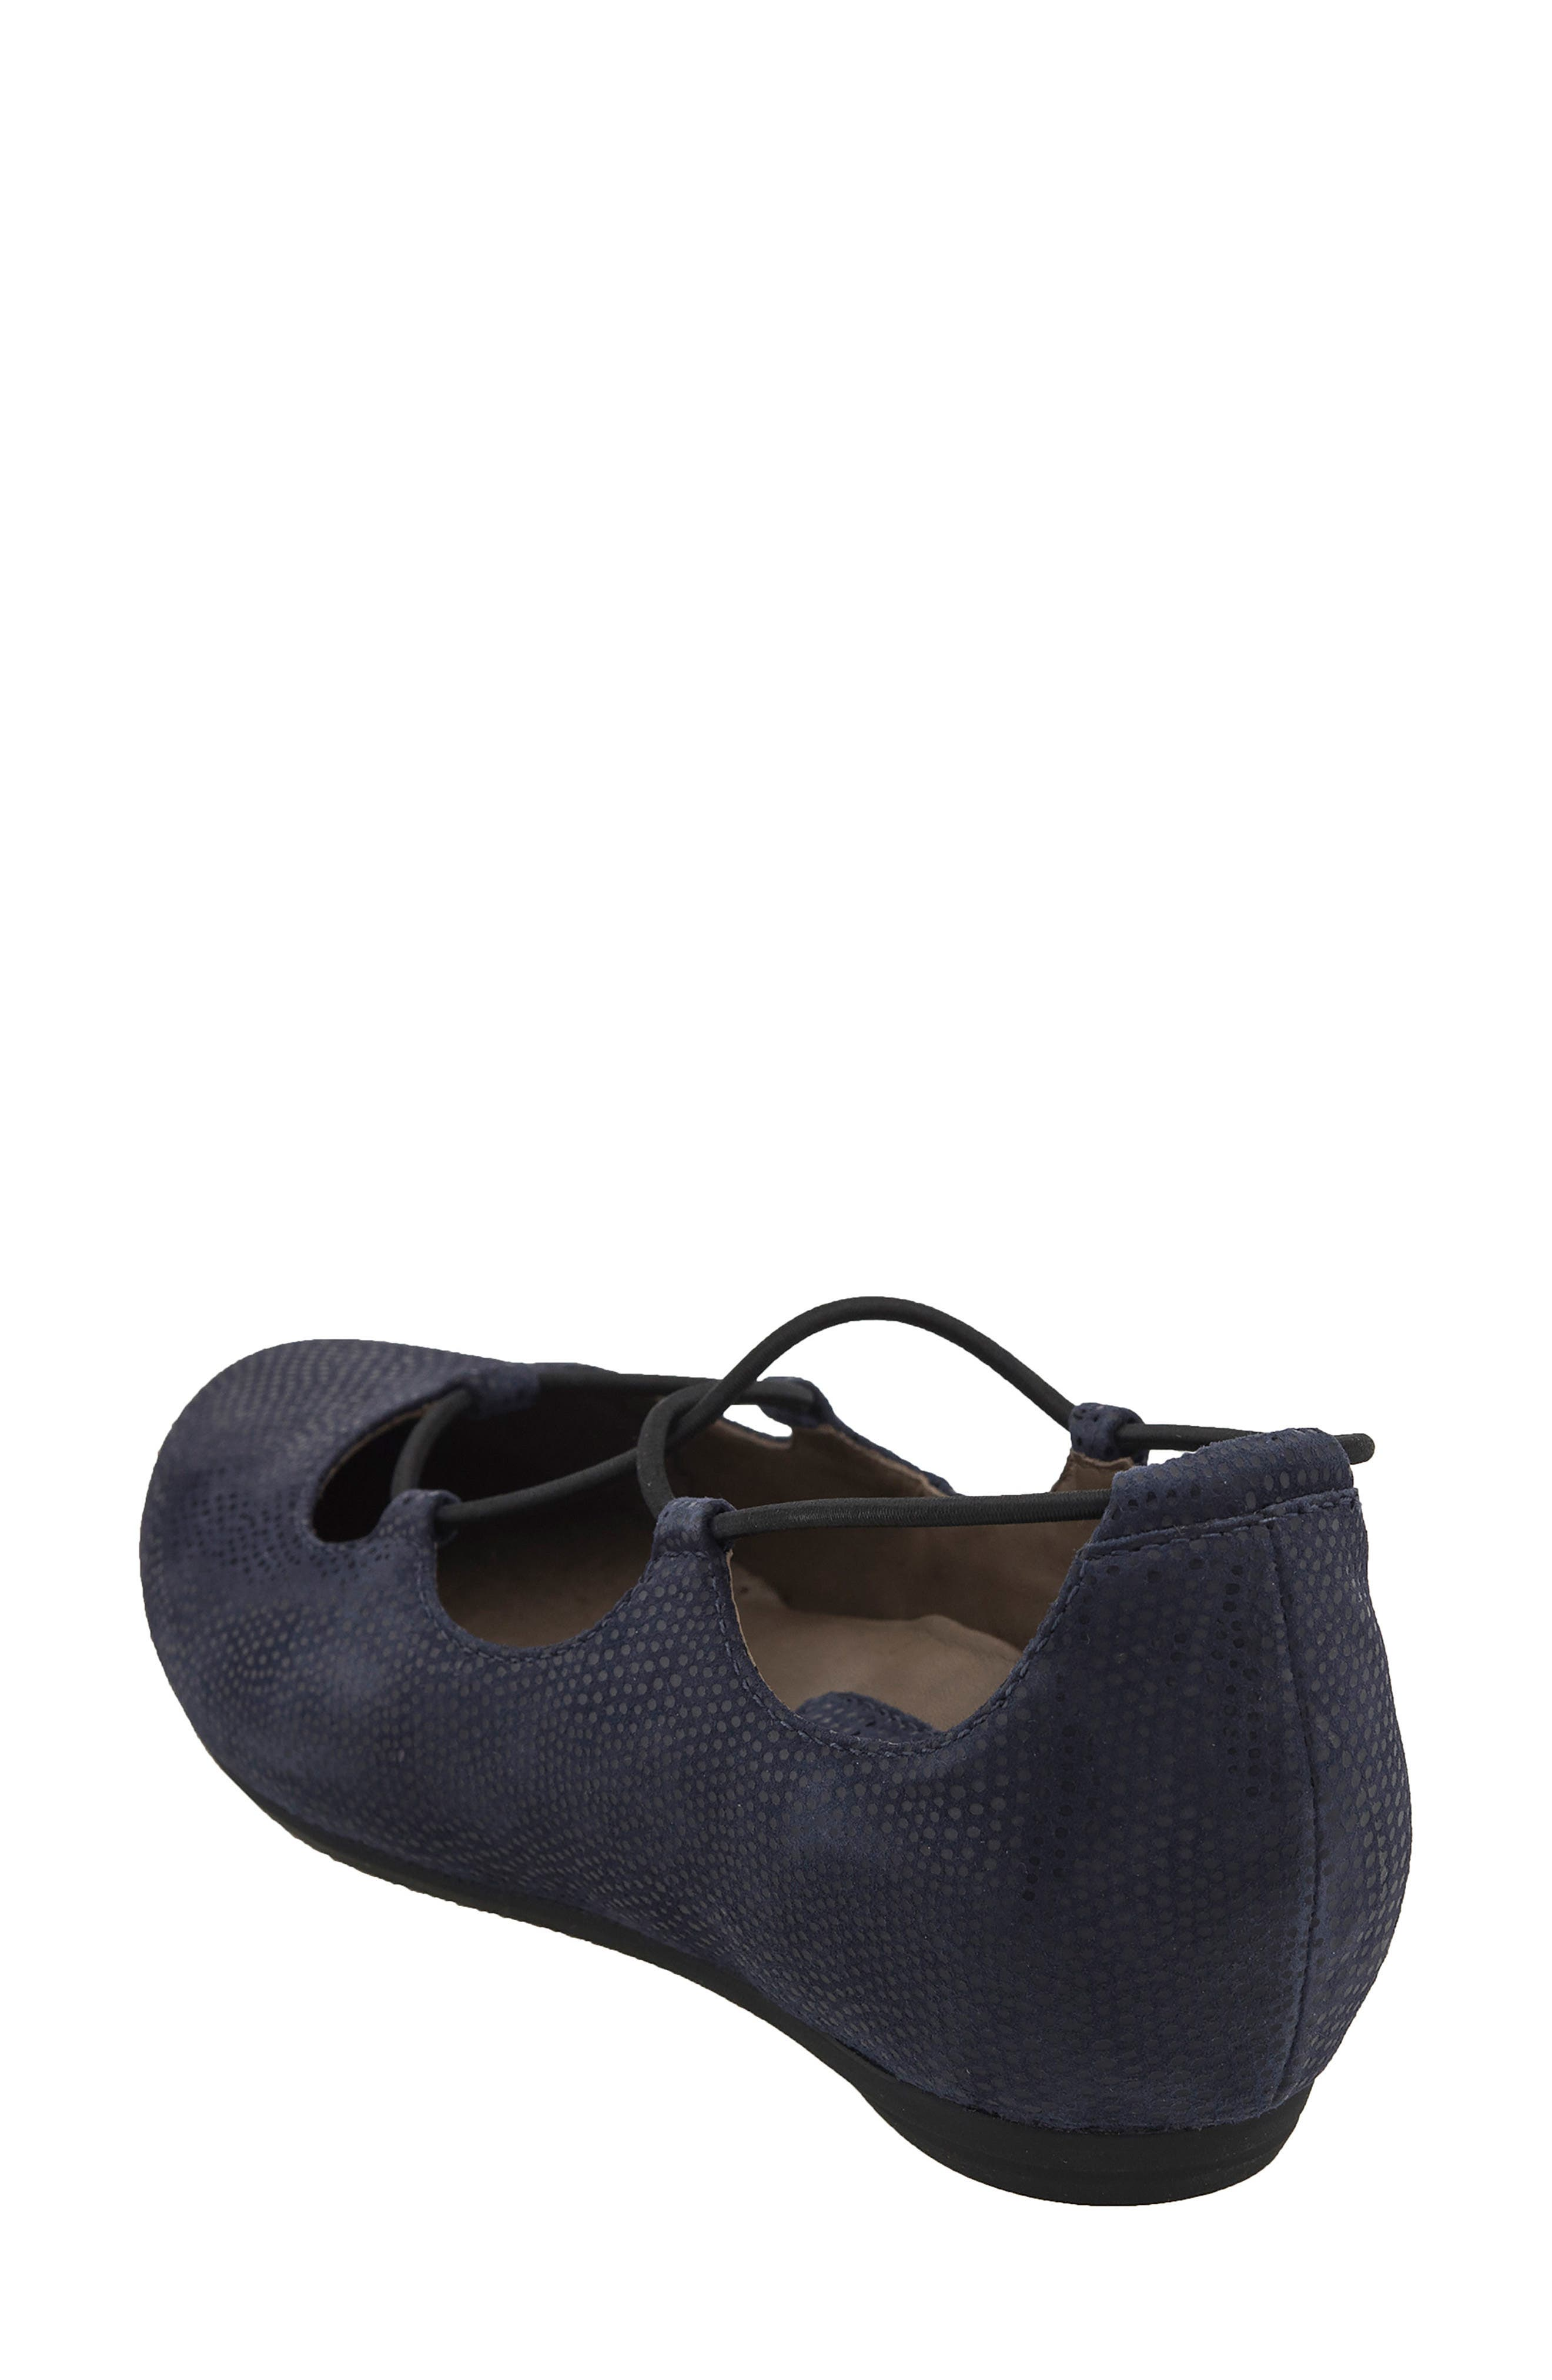 'Essen' Ghillie Flat,                             Alternate thumbnail 3, color,                             Navy Printed Suede